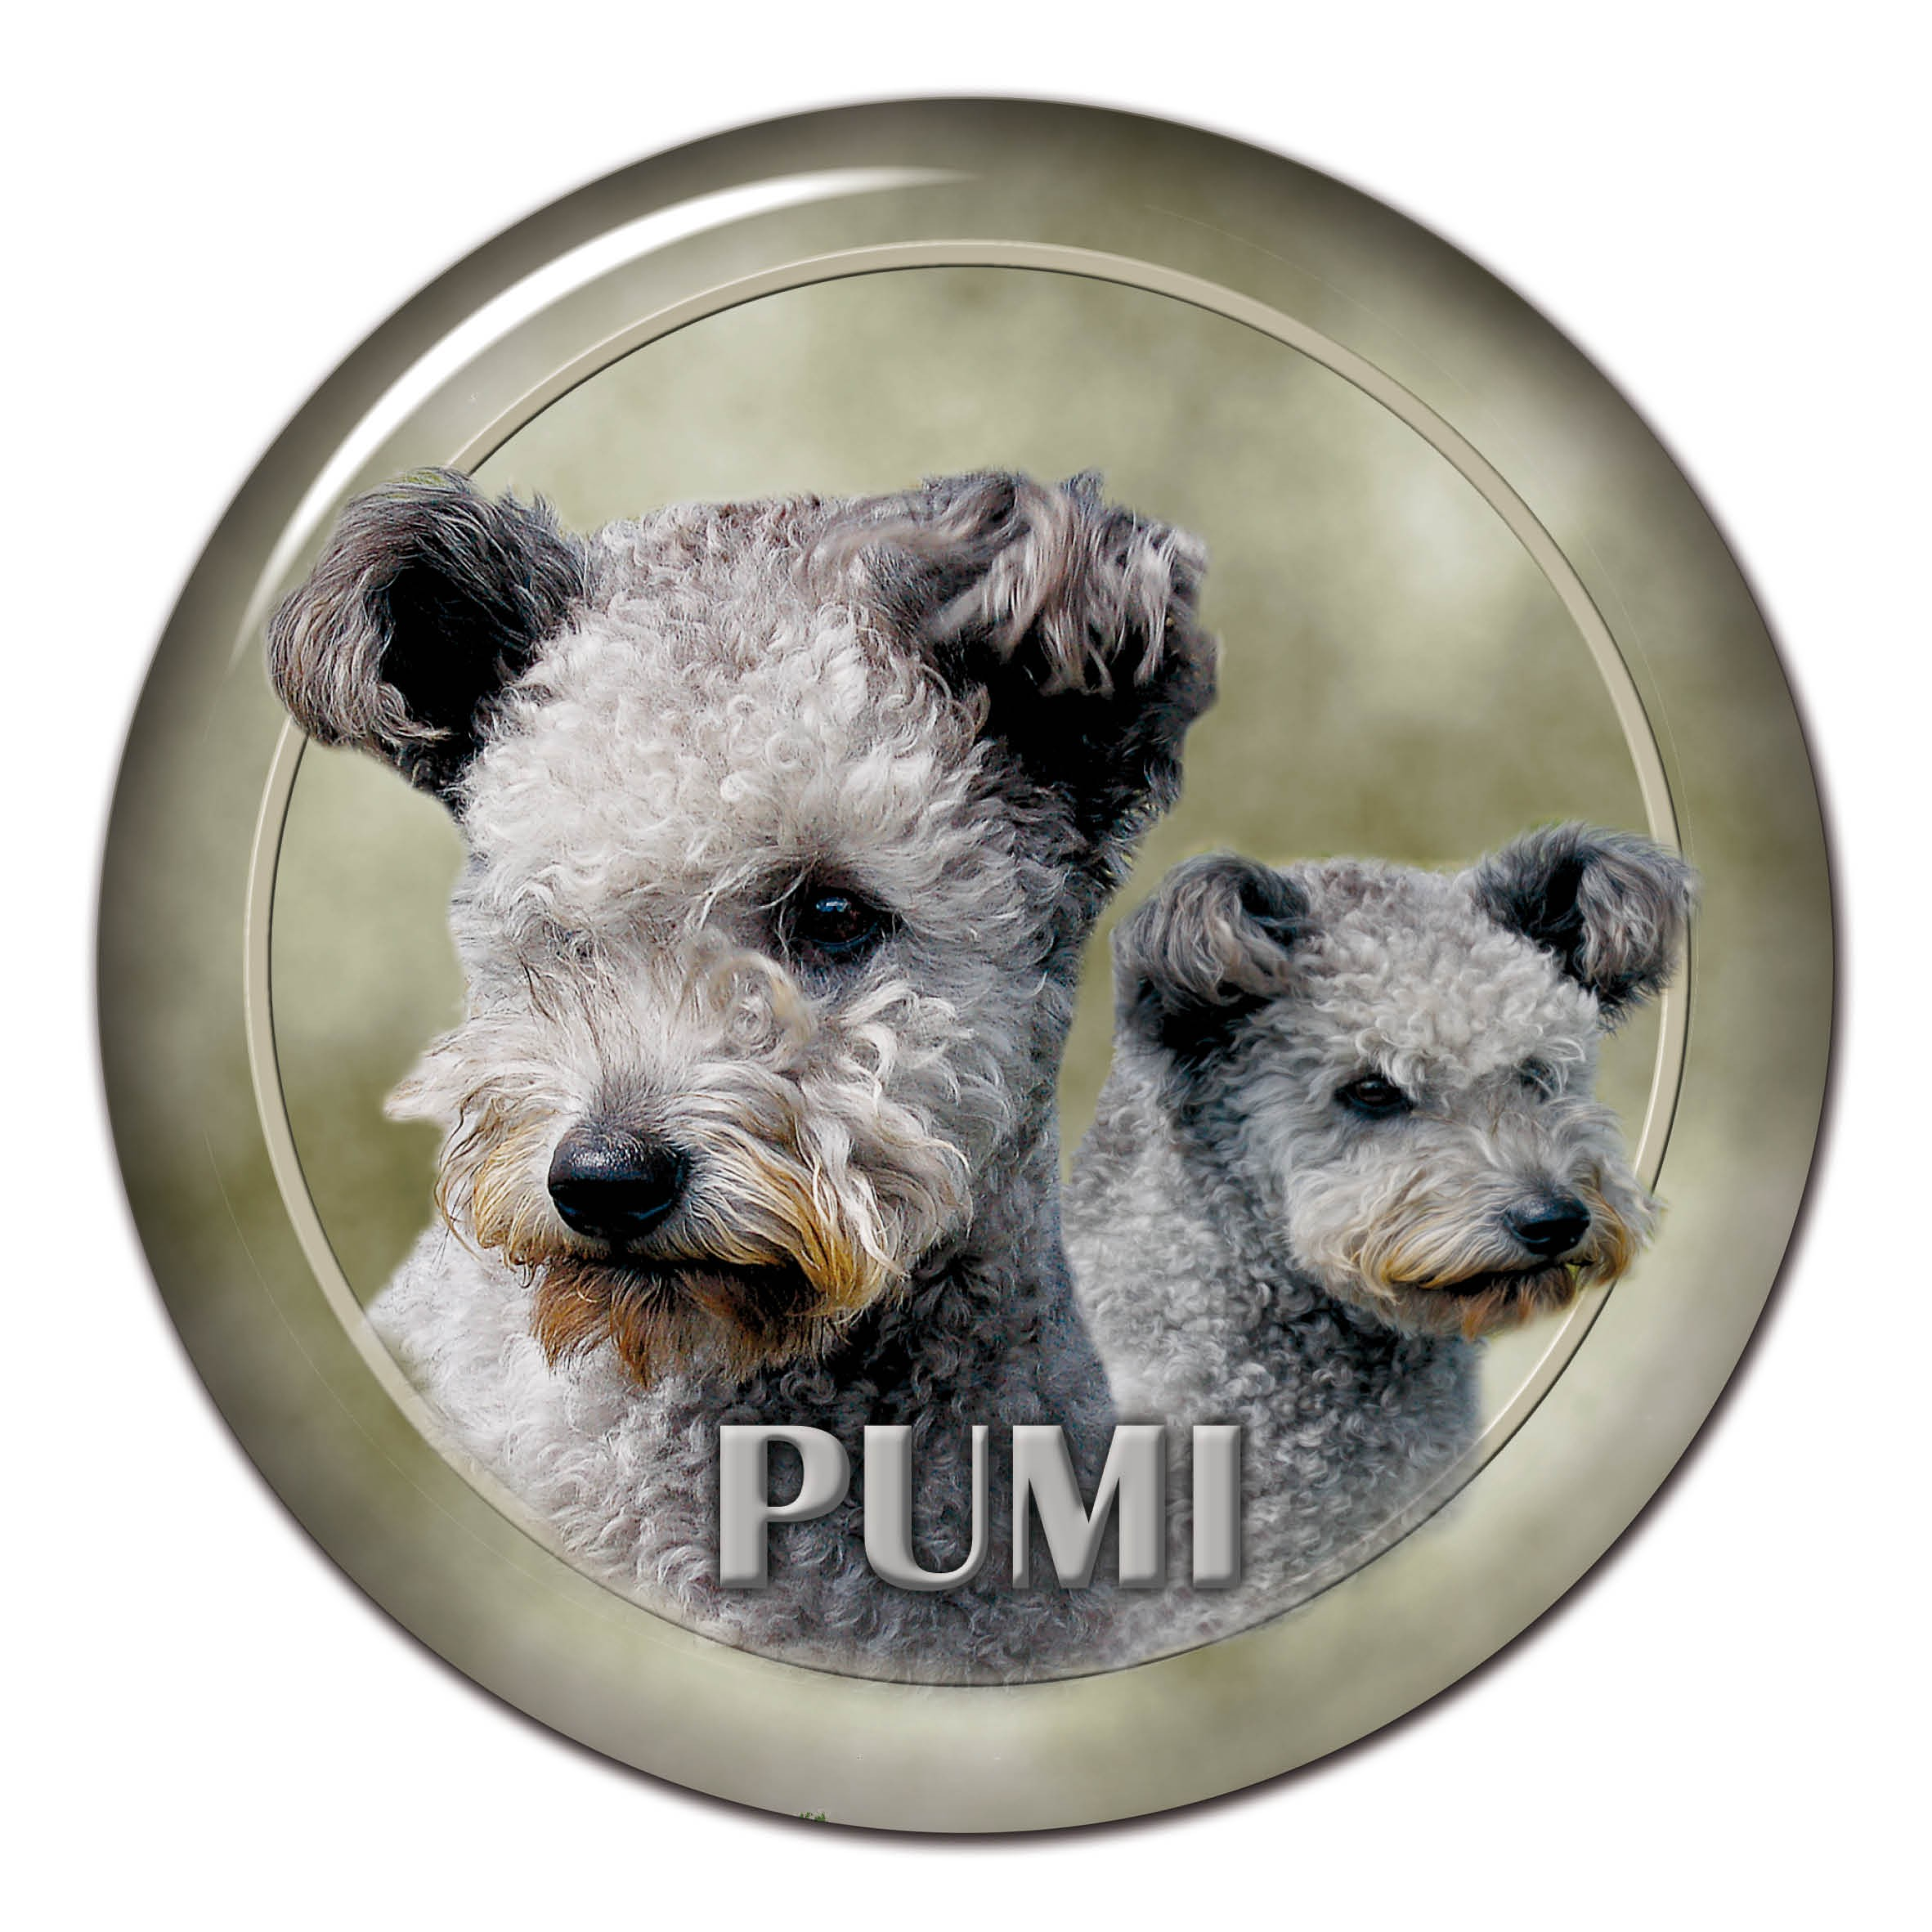 3D sticker Pumi 101 C from AllDogStickers.com - dog breed stickers ...